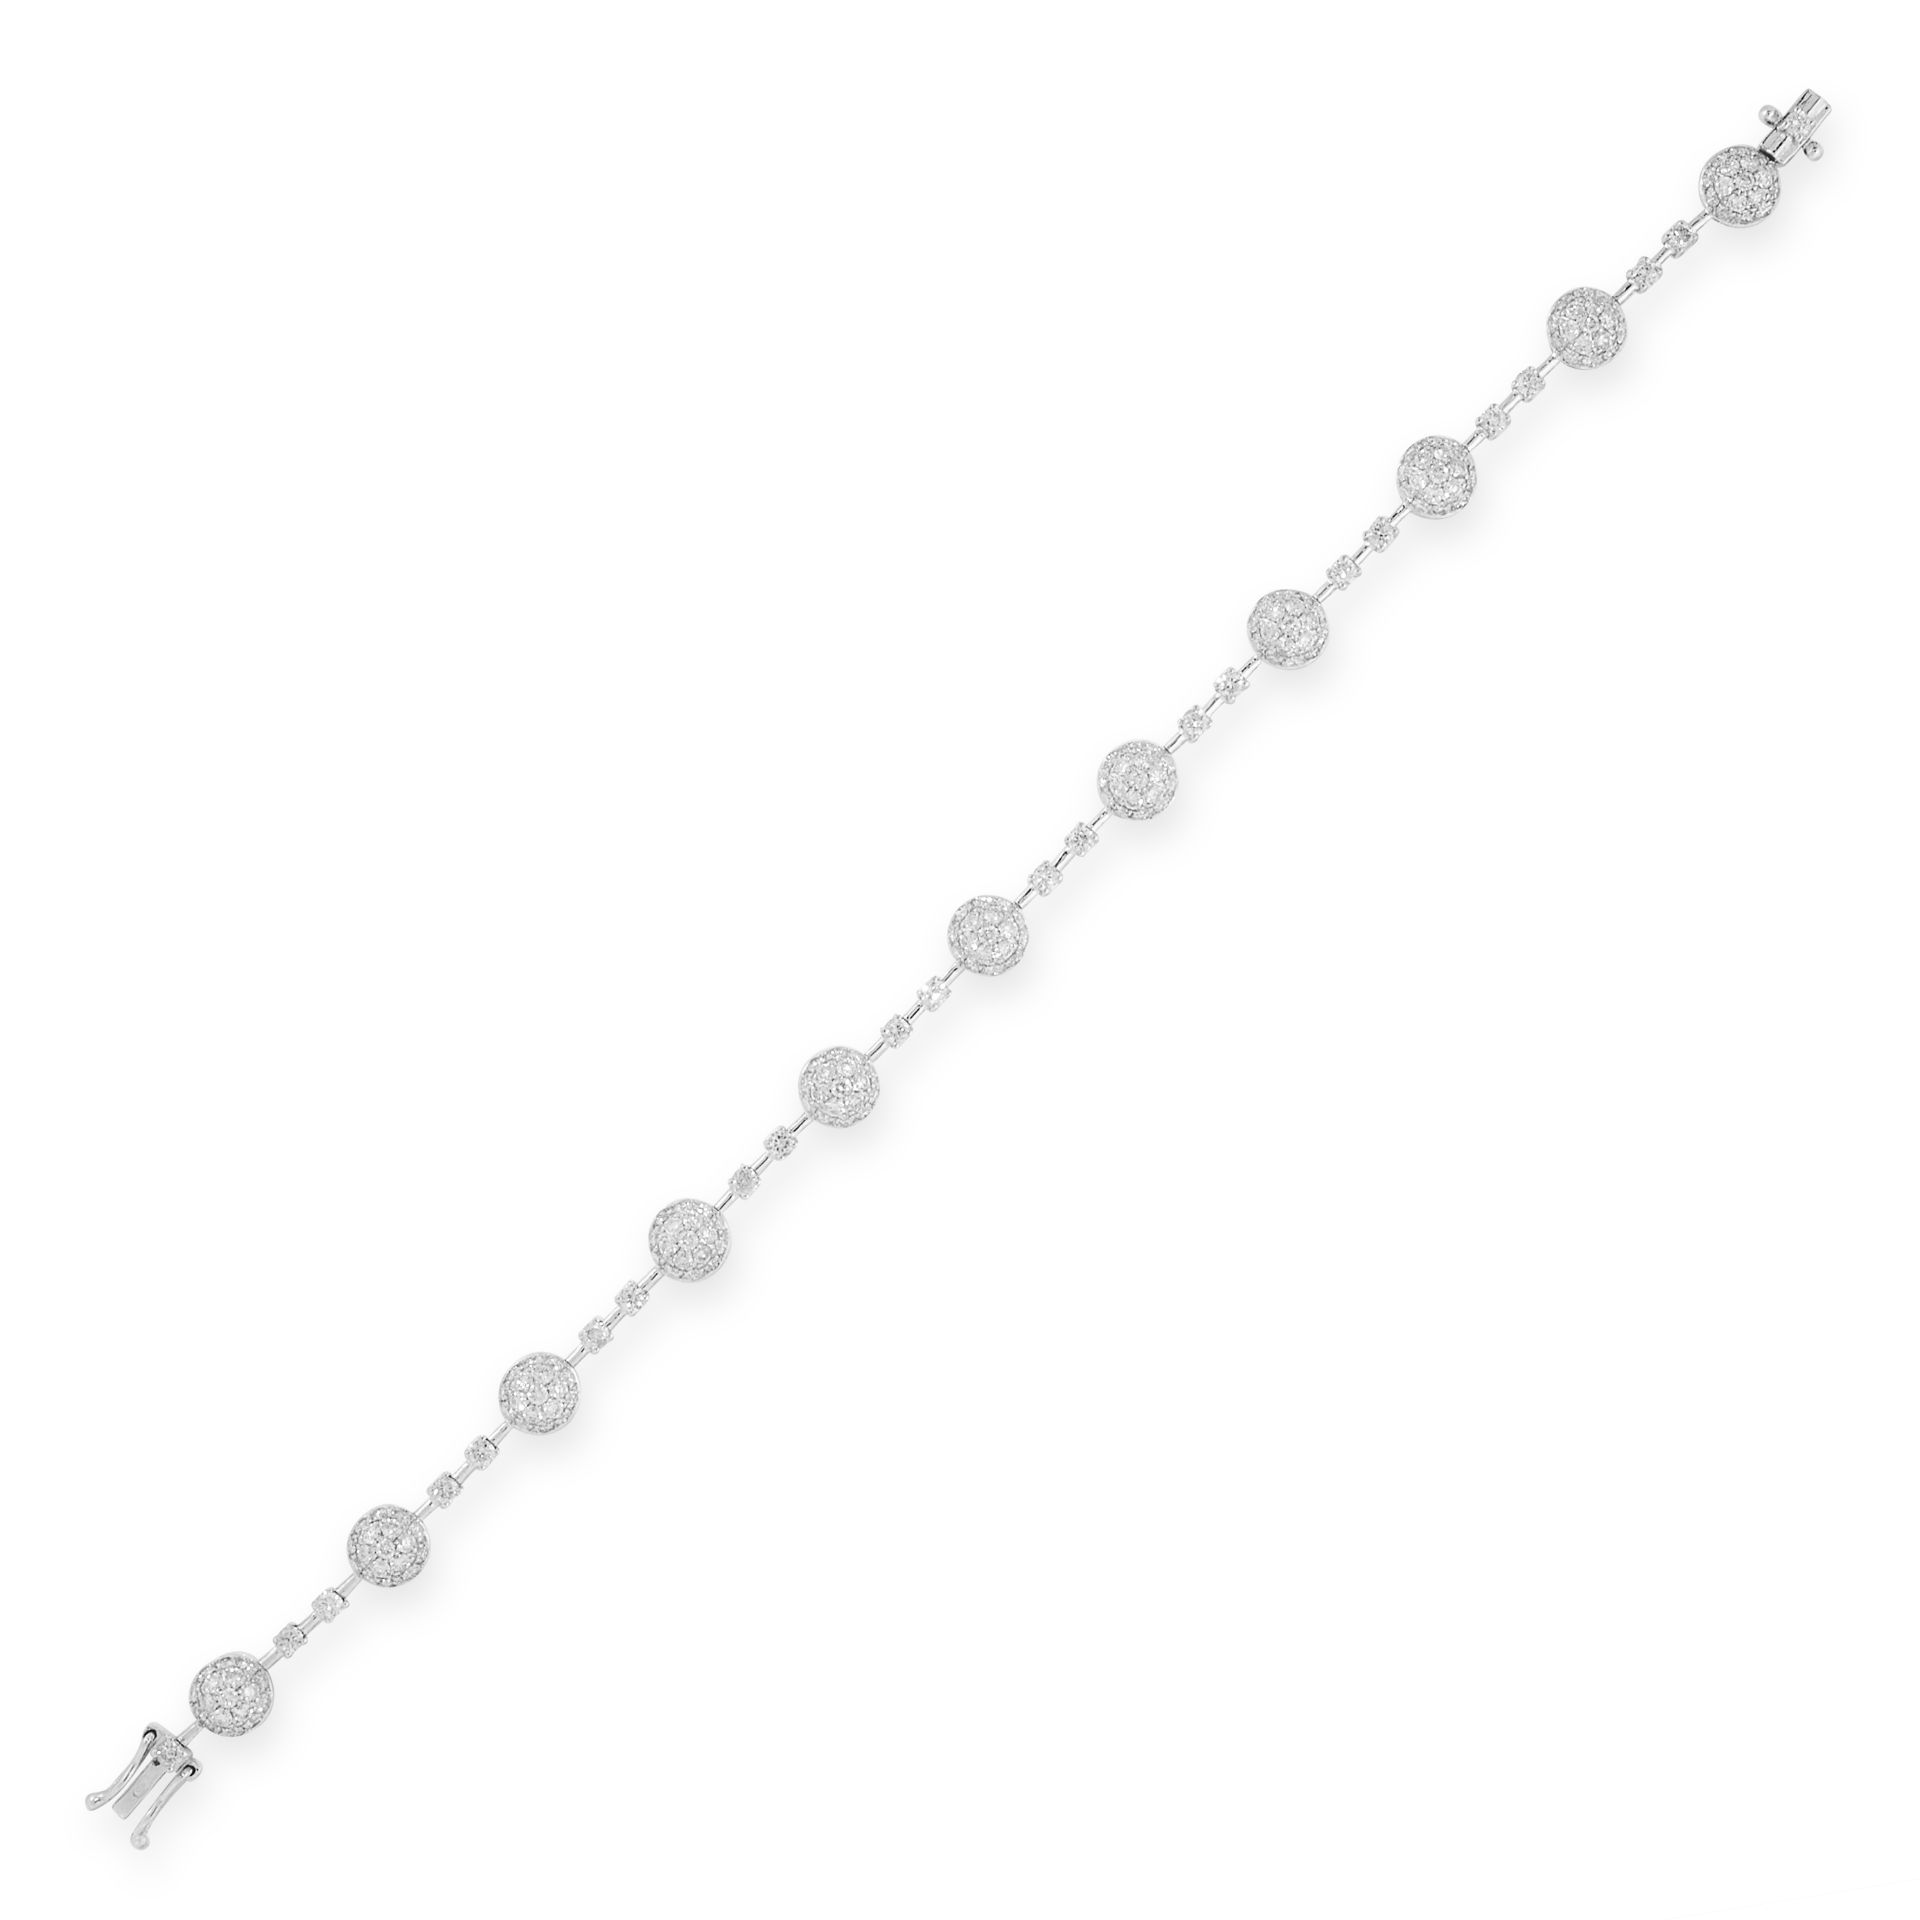 A DIAMOND LINE BRACELET in 18ct white gold, comprising of eleven circular links set with round cut